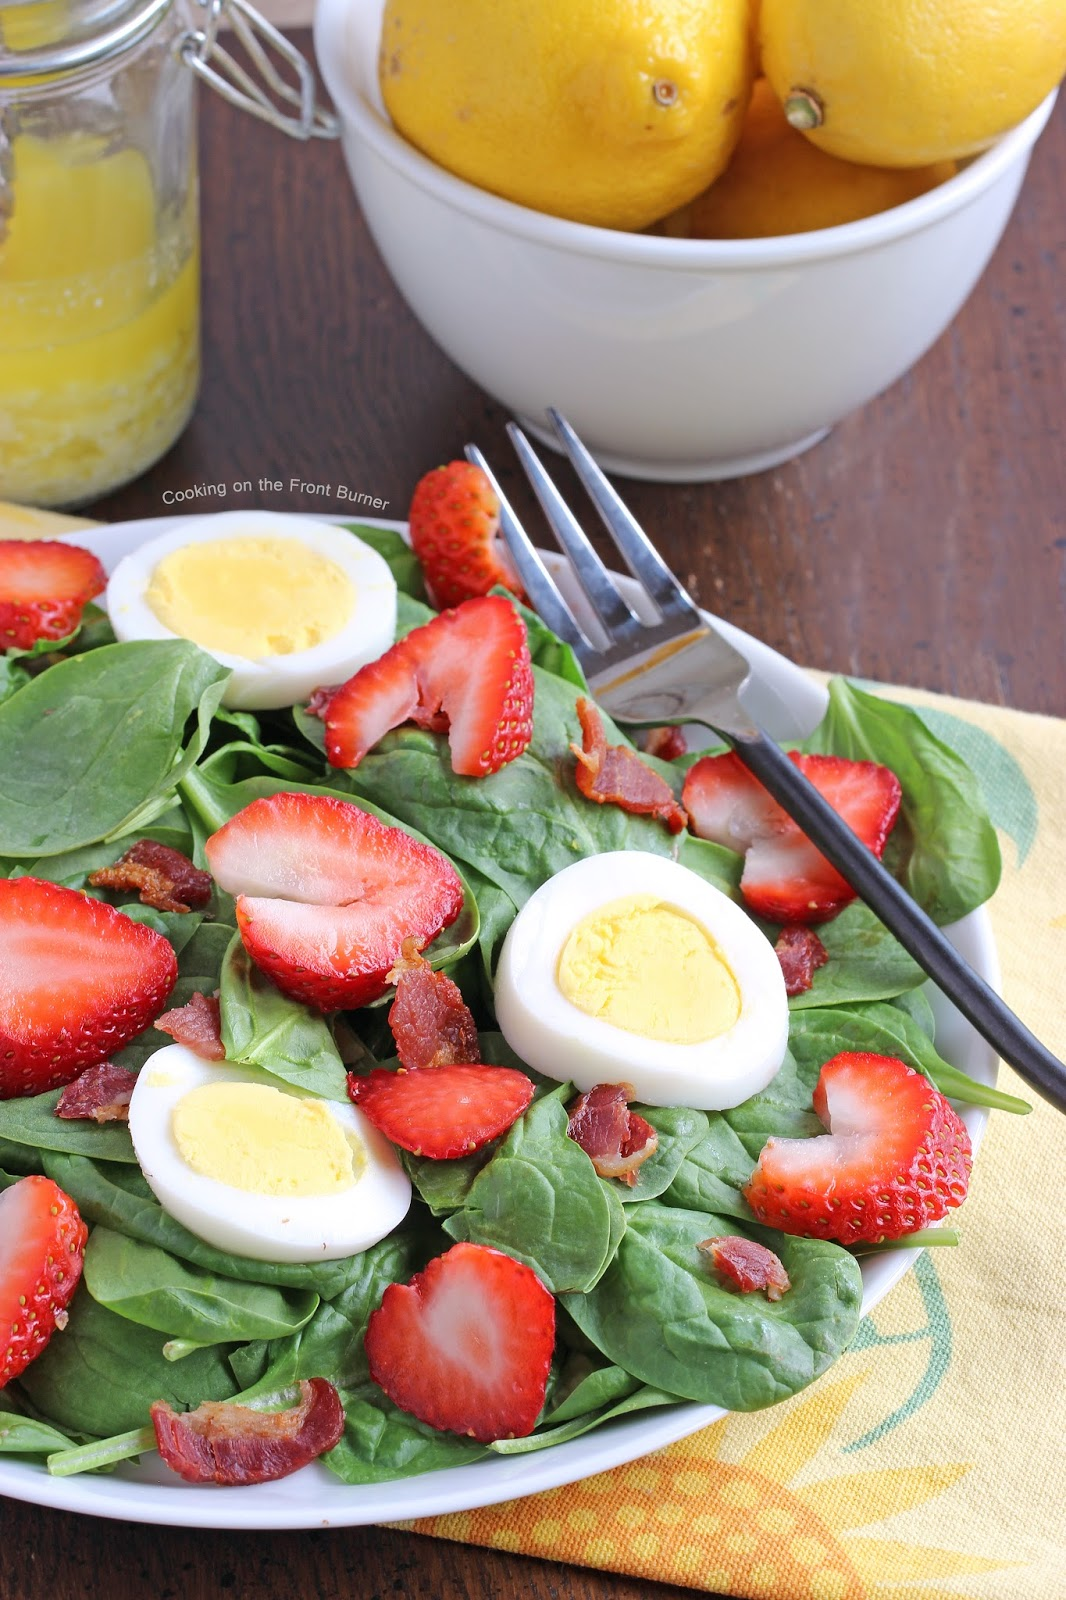 Lemon Parmesan Salad Dressing | Cooking on the Front Burner #spinachsalad #strawberries